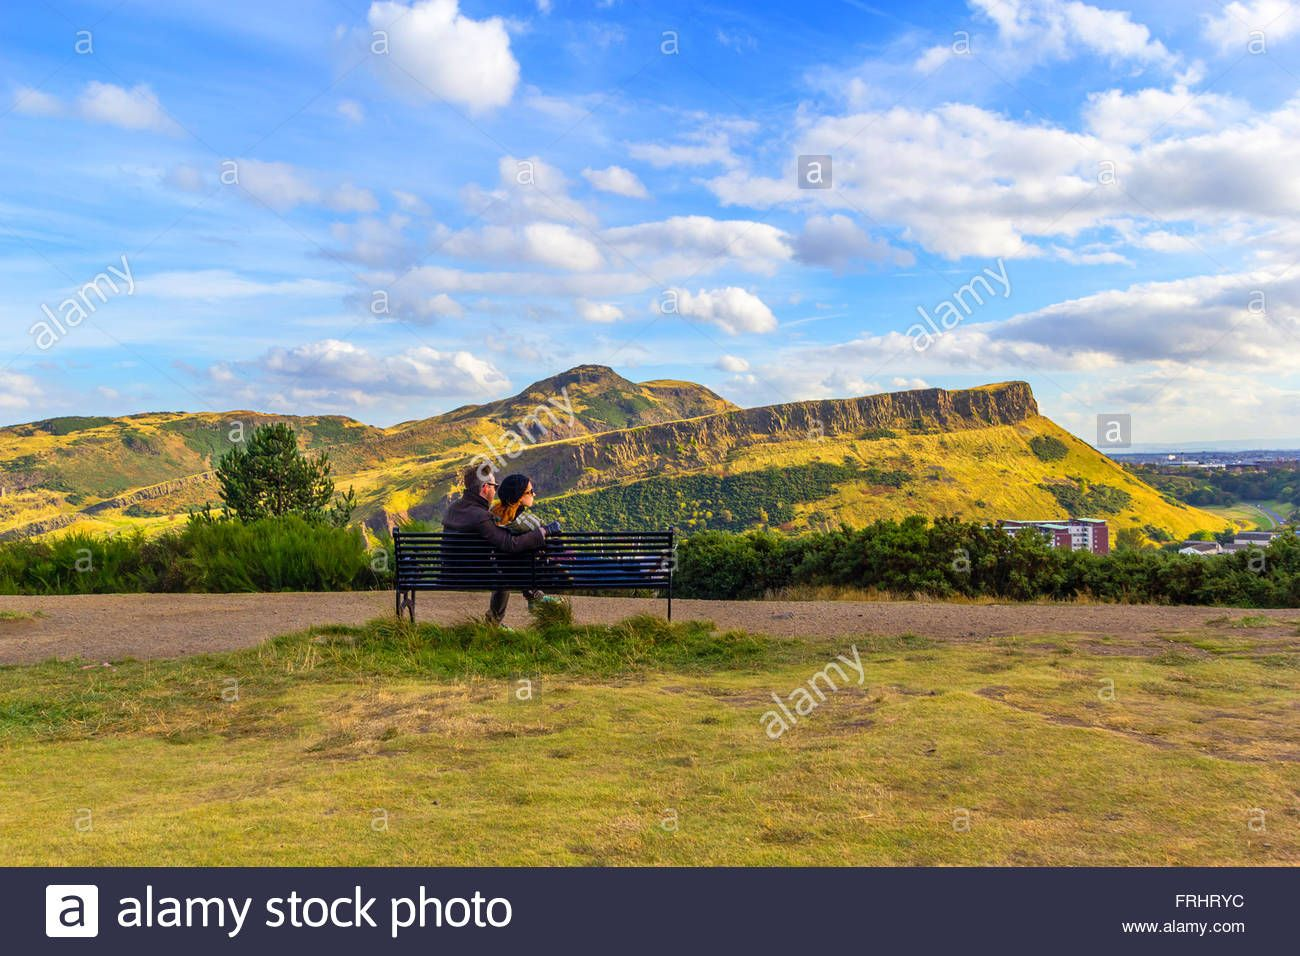 Download This Stock Image A Young Couple Sitting On The Bench At Carlton Hill Edinburgh Scotland Uk Frhryc From Alamy S L Photo Stock Photos Carlton Hill